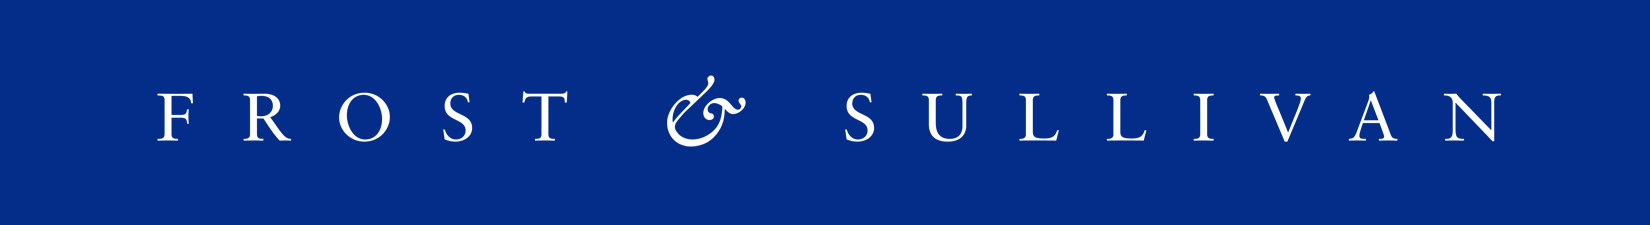 frost and sullivan logo blue